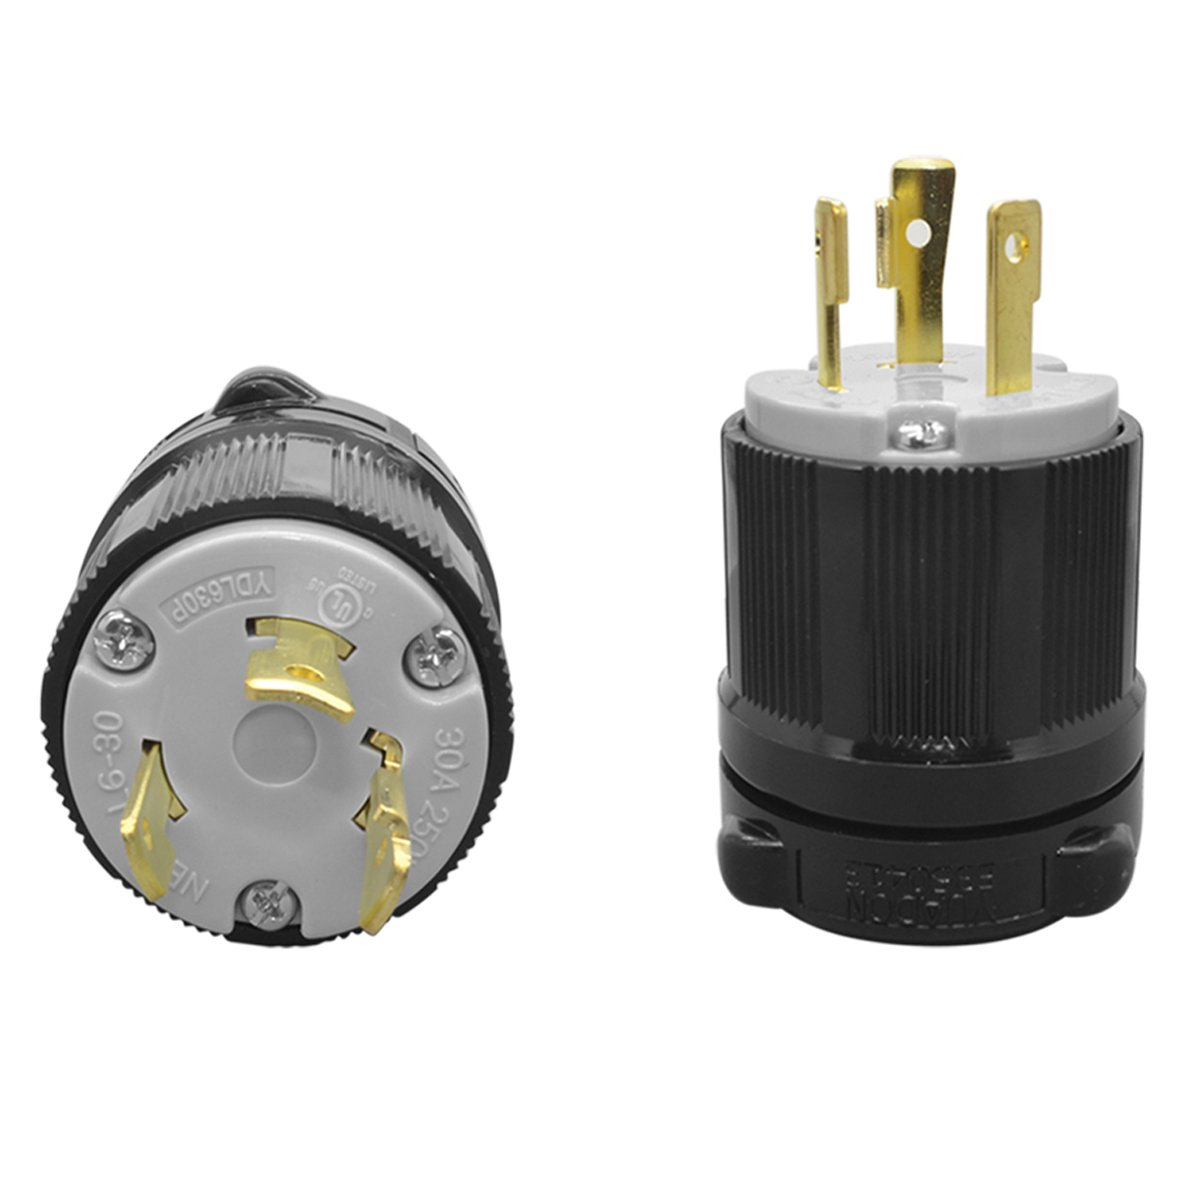 L6-30P Plug 3 Wire 30Amps Male 250V  Approval Safety for L6-30R Outlets